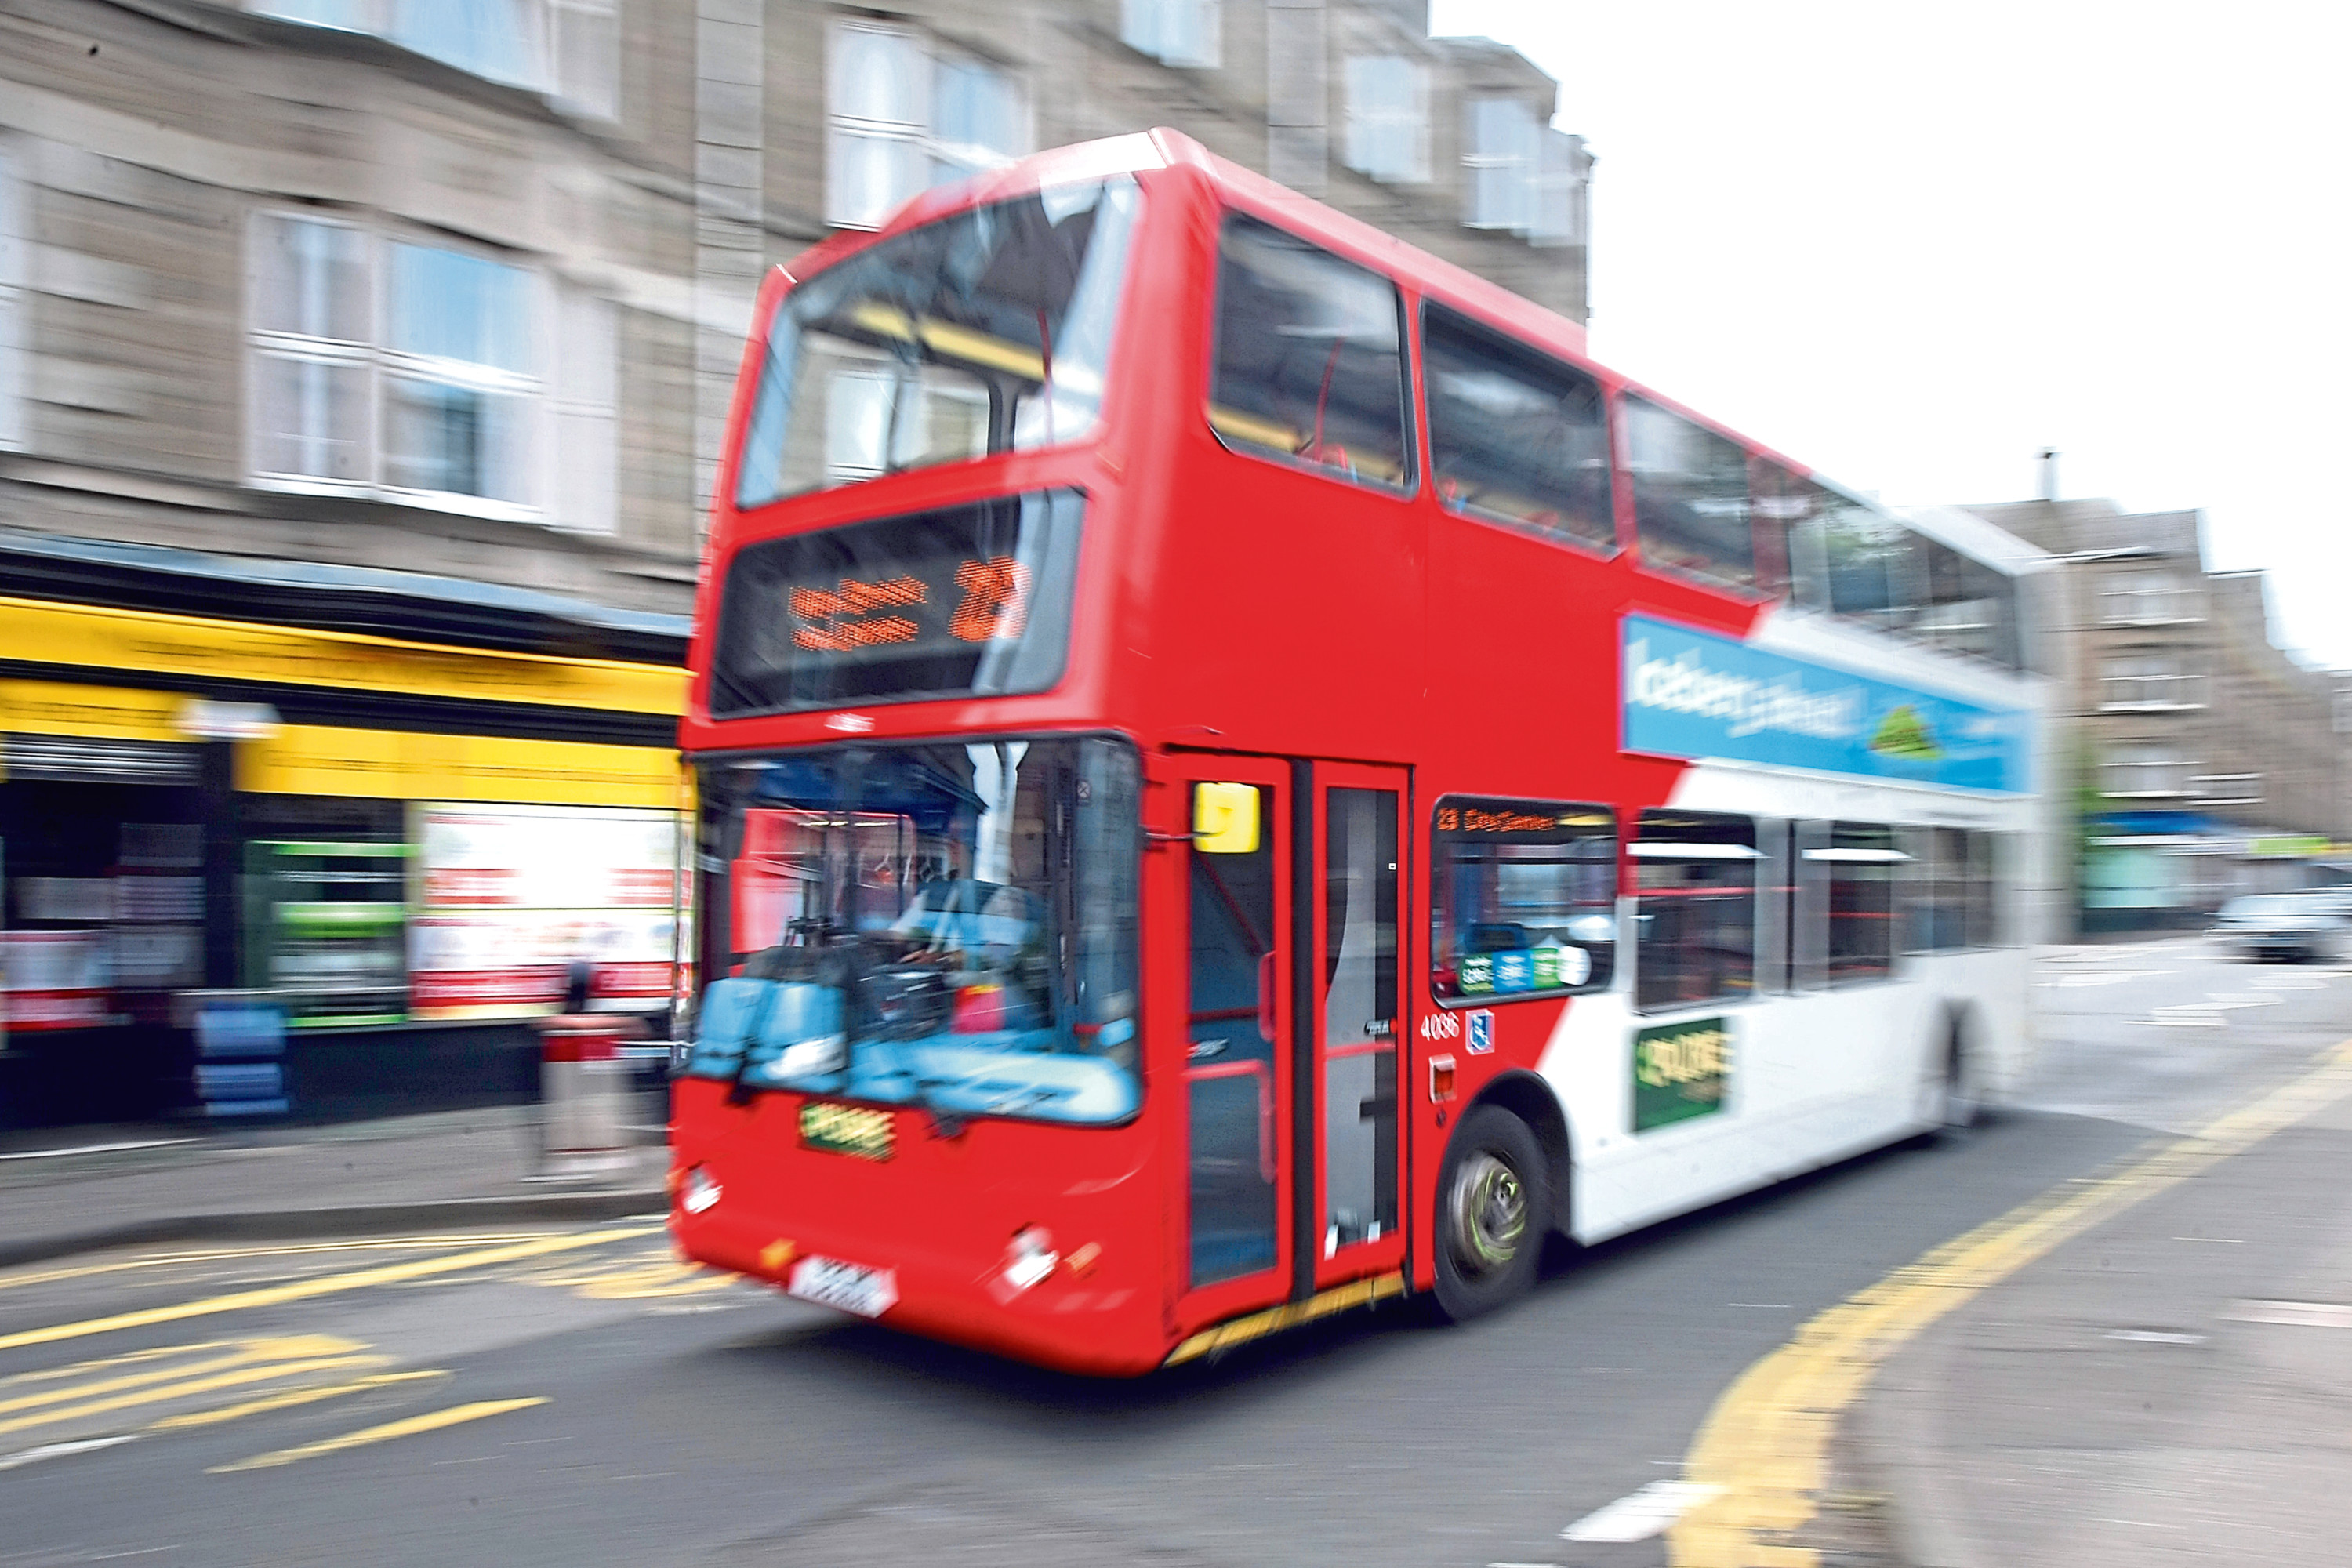 A bus in Dundee city centre.